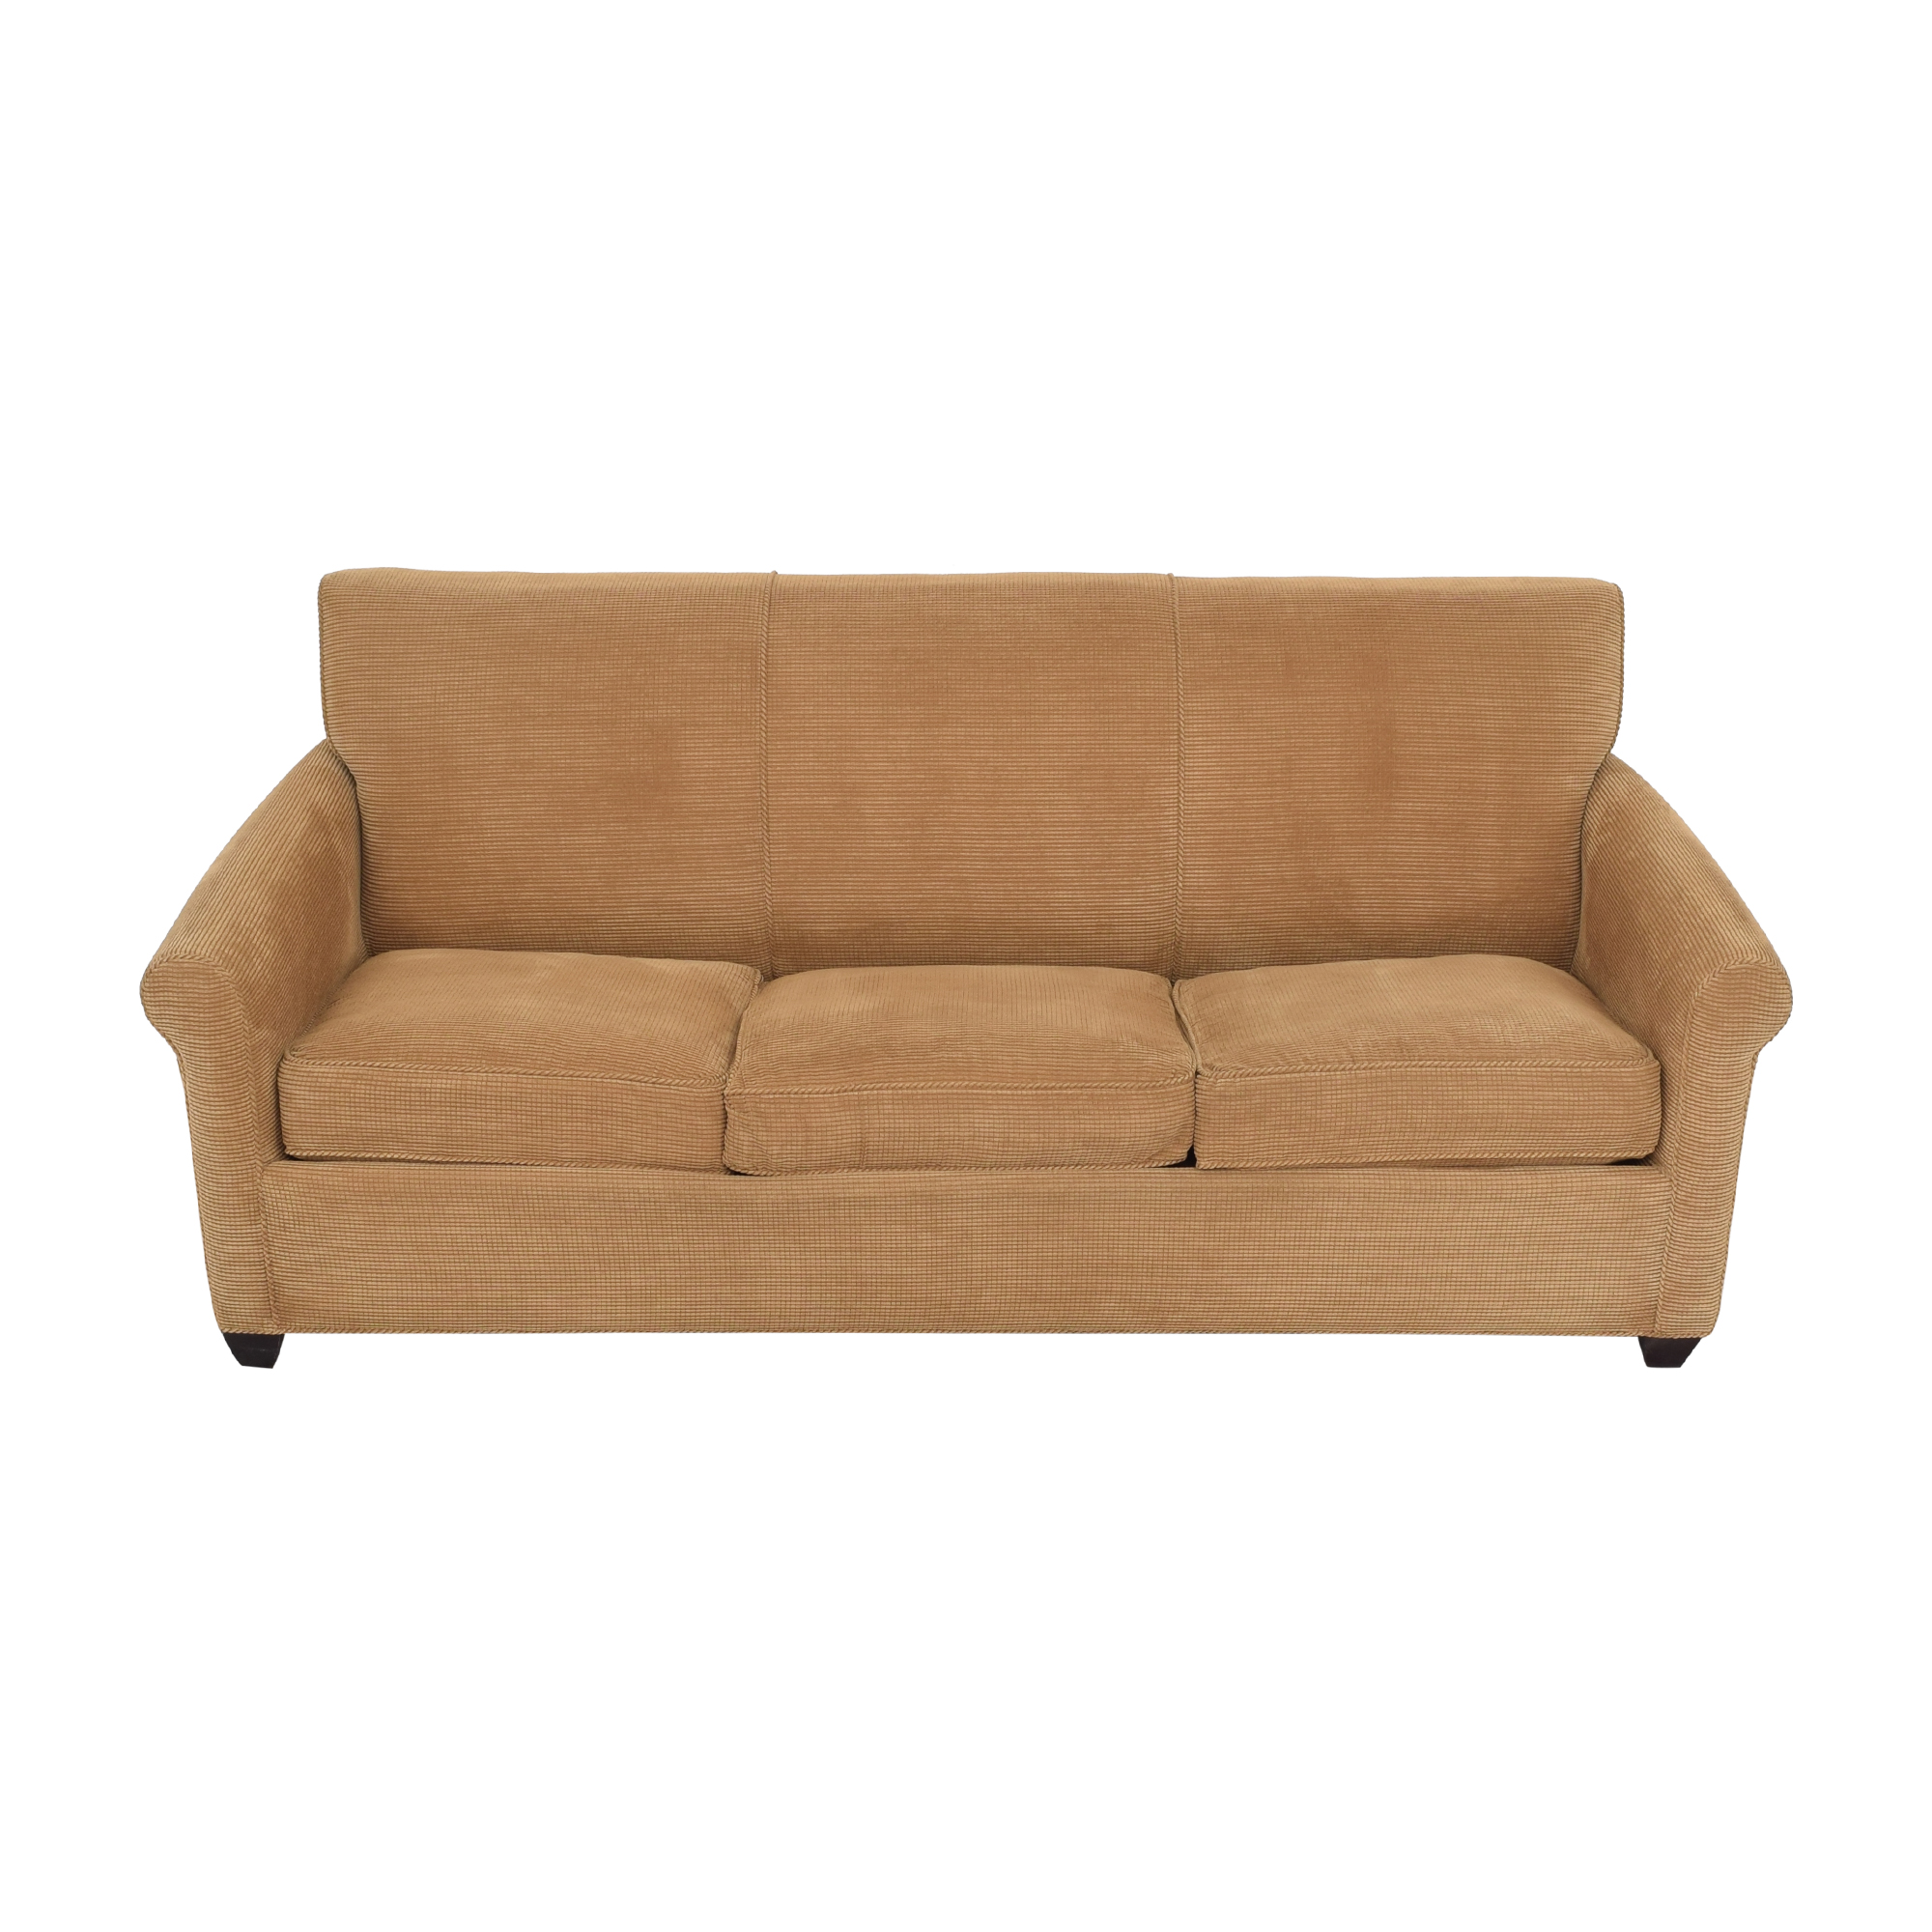 Crate & Barrel Crate & Barrel Rolled Arm Queen Sleeper Sofa